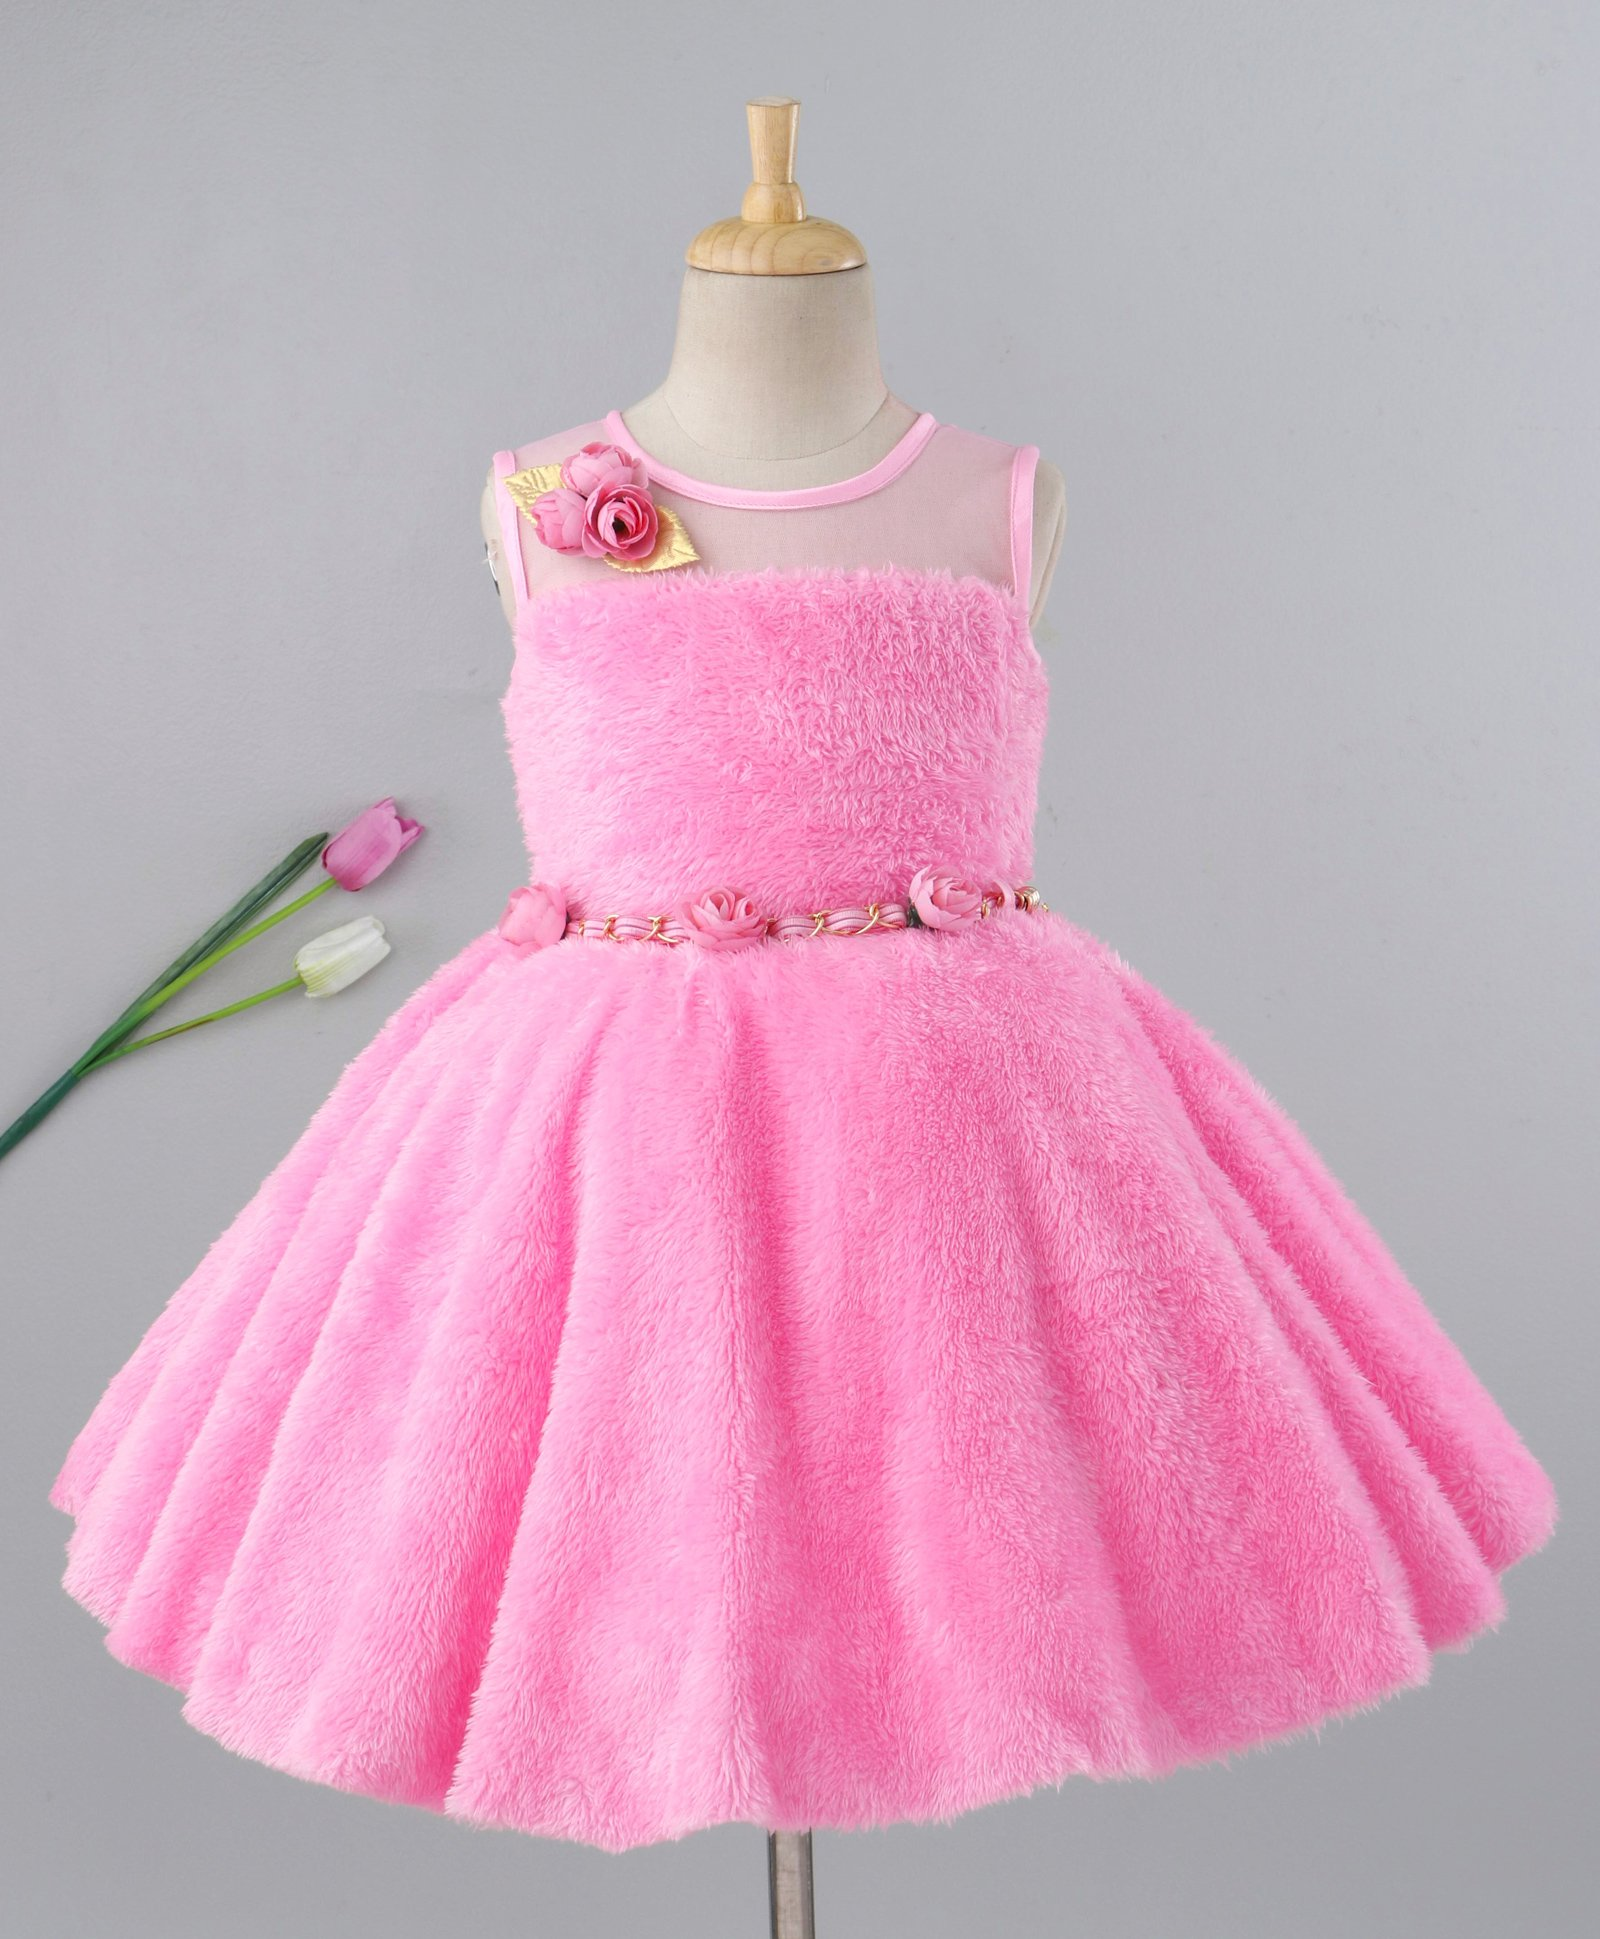 d1aafeba6ce44 Buy Enfance Flower Applique Sleeveless Dress With Belt Pink for Girls (2-3  Years) Online in India, Shop at FirstCry.com - 2509855